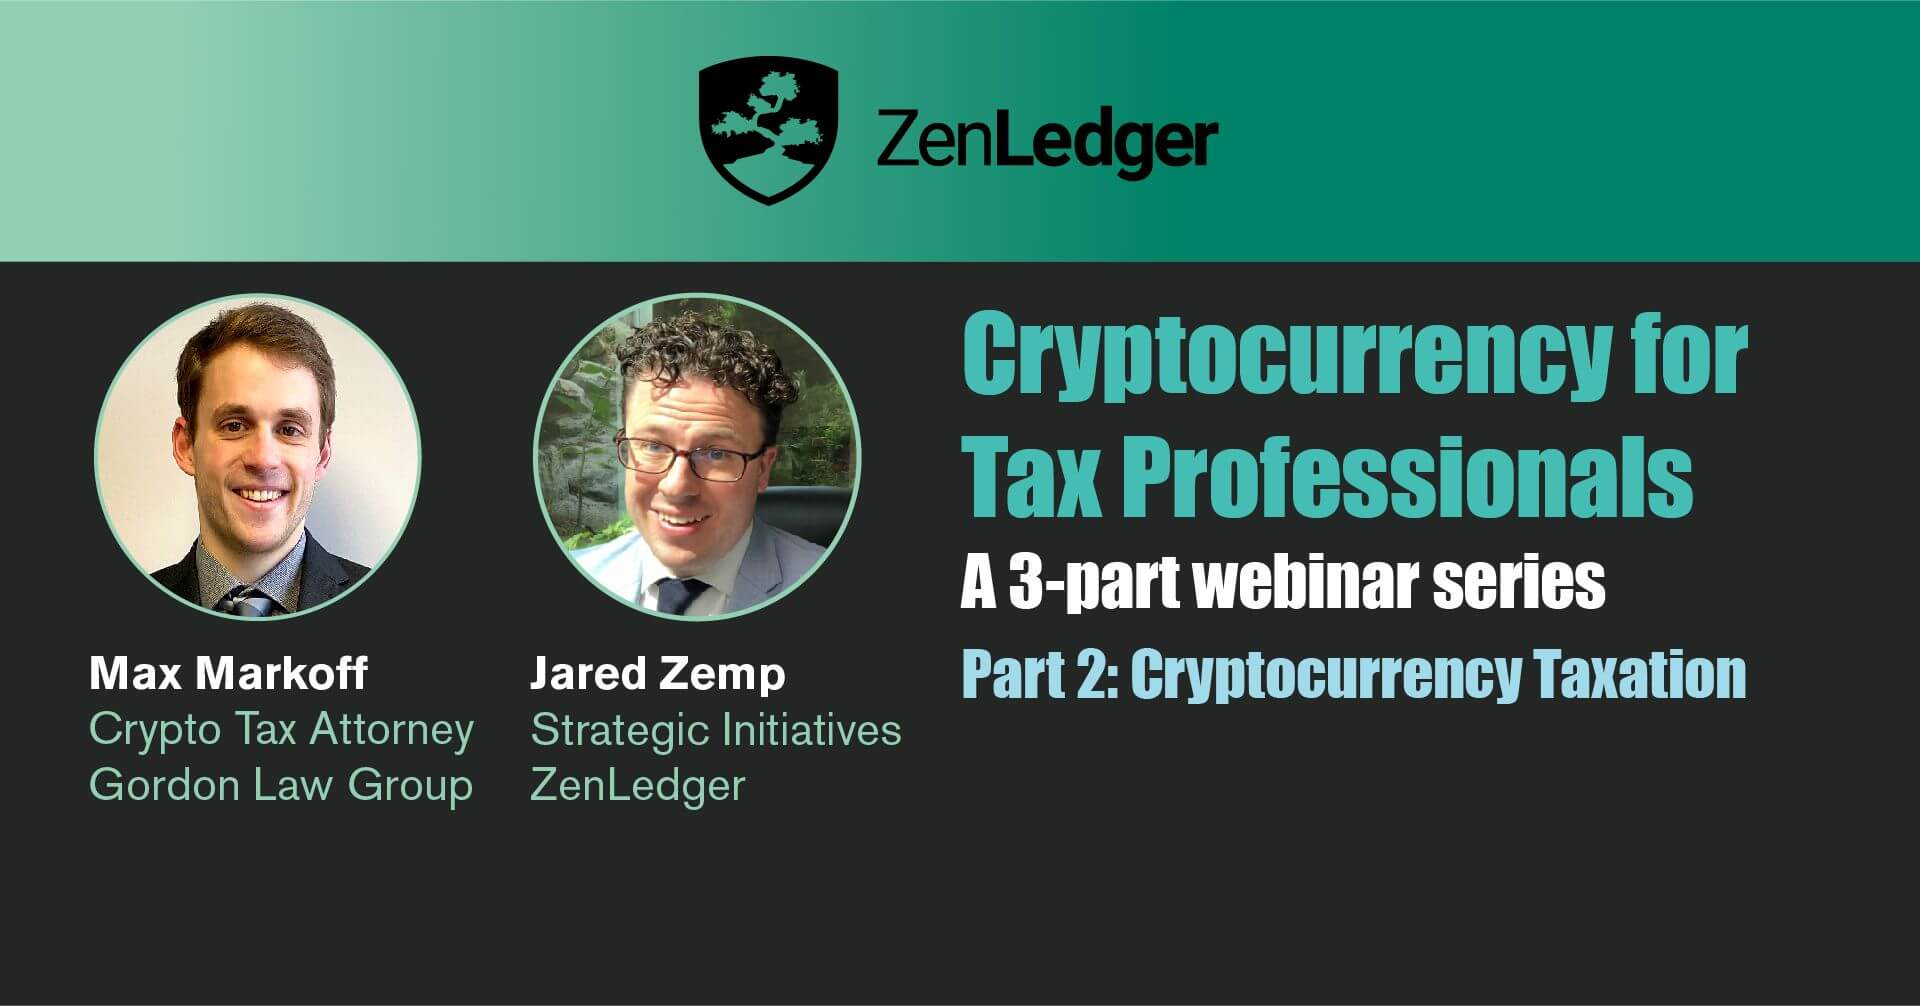 Crypto Taxation Webinar for Tax Professionals